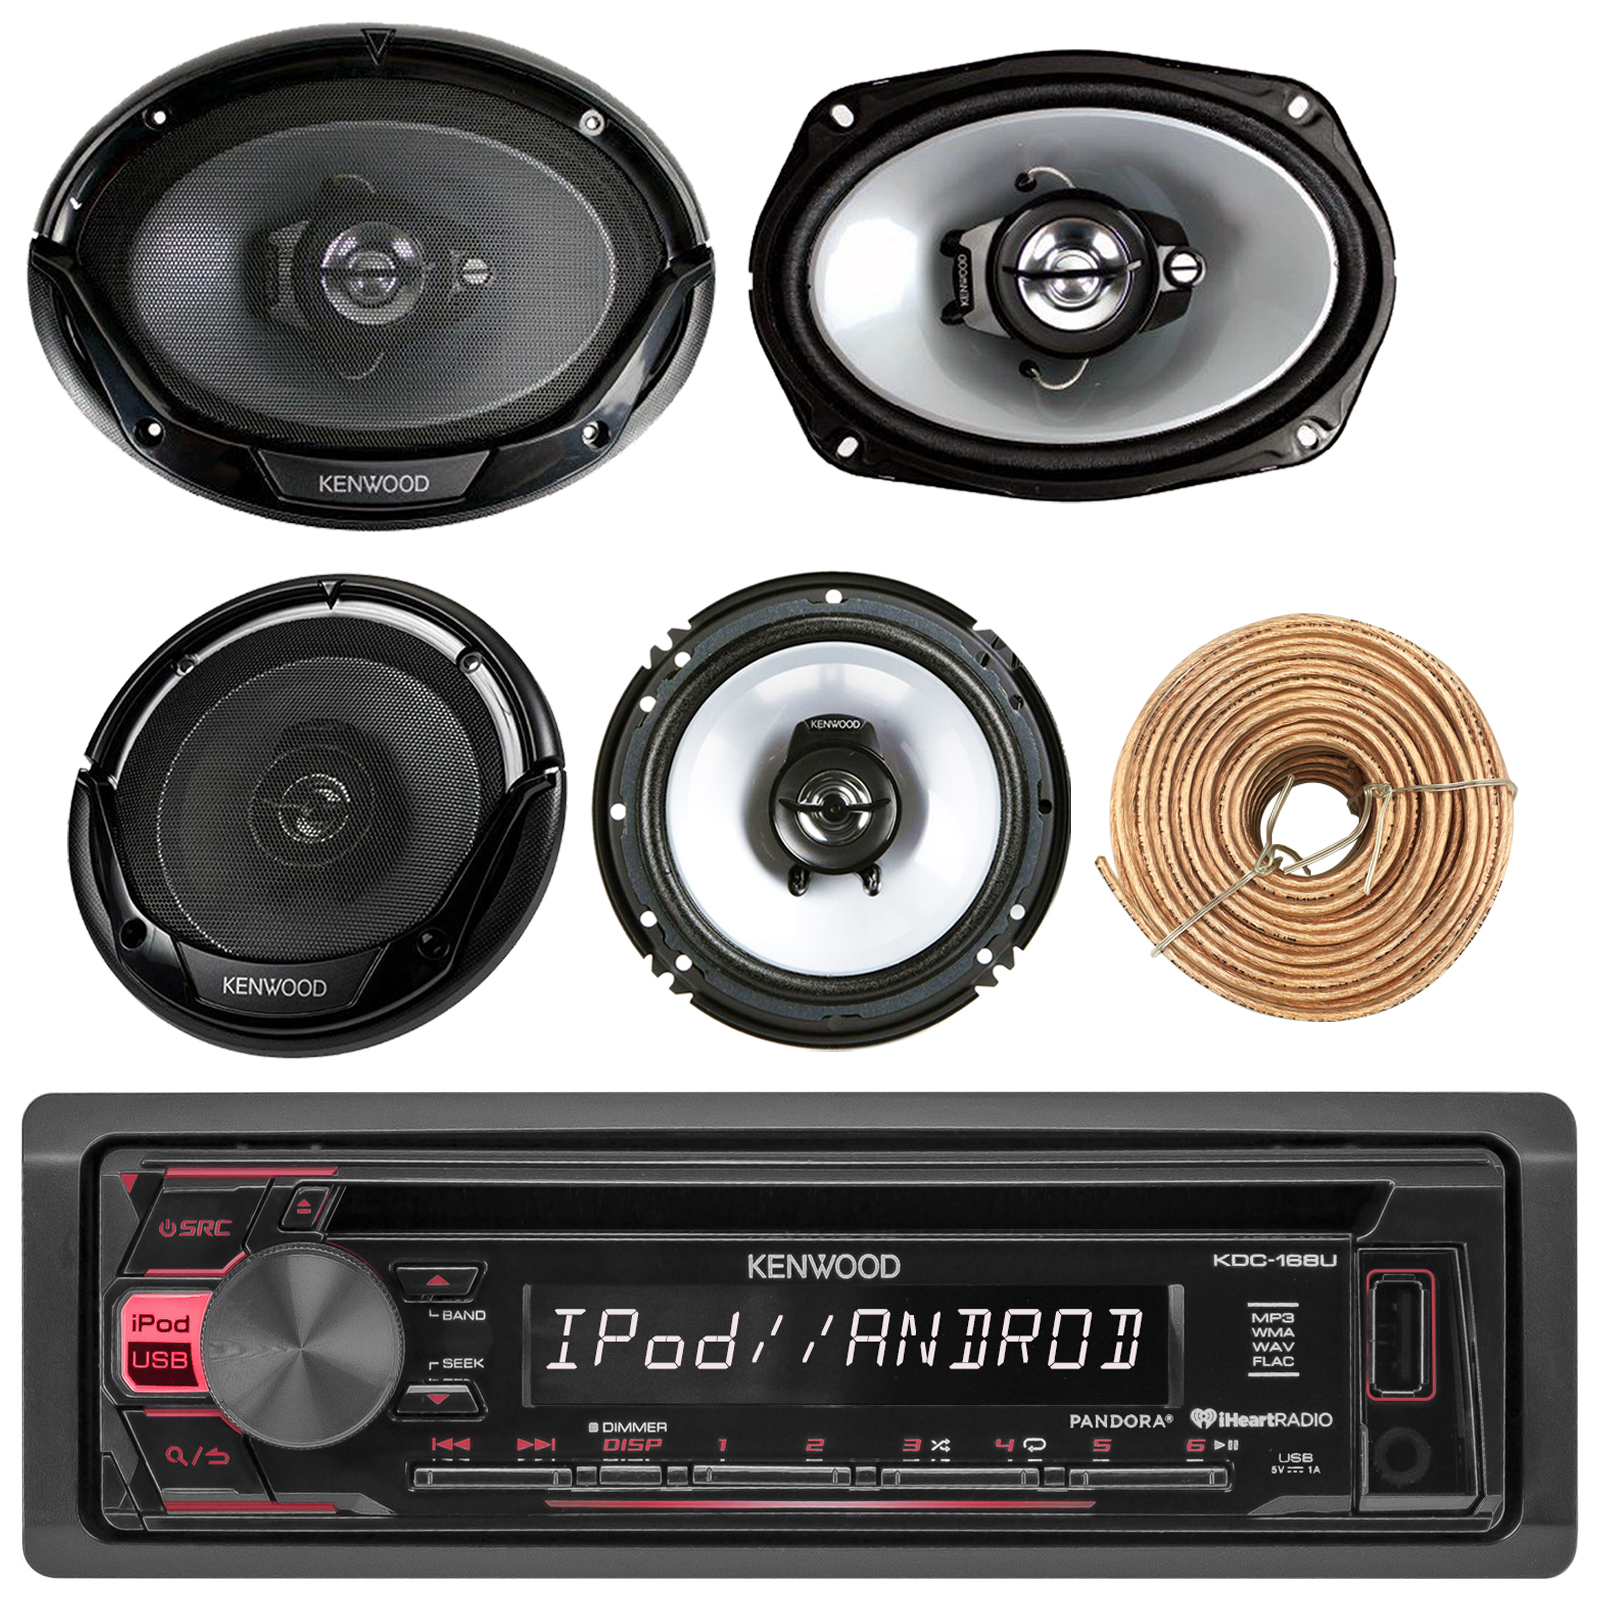 50 ft Speaker Wire 2 Speakers 6.5 Inch Kenwood Bluetooth AM//FM Radio Car MP3 Receiver Player Bundle with 2 Speakers 6x9 Inch 400 Watt Amplifier